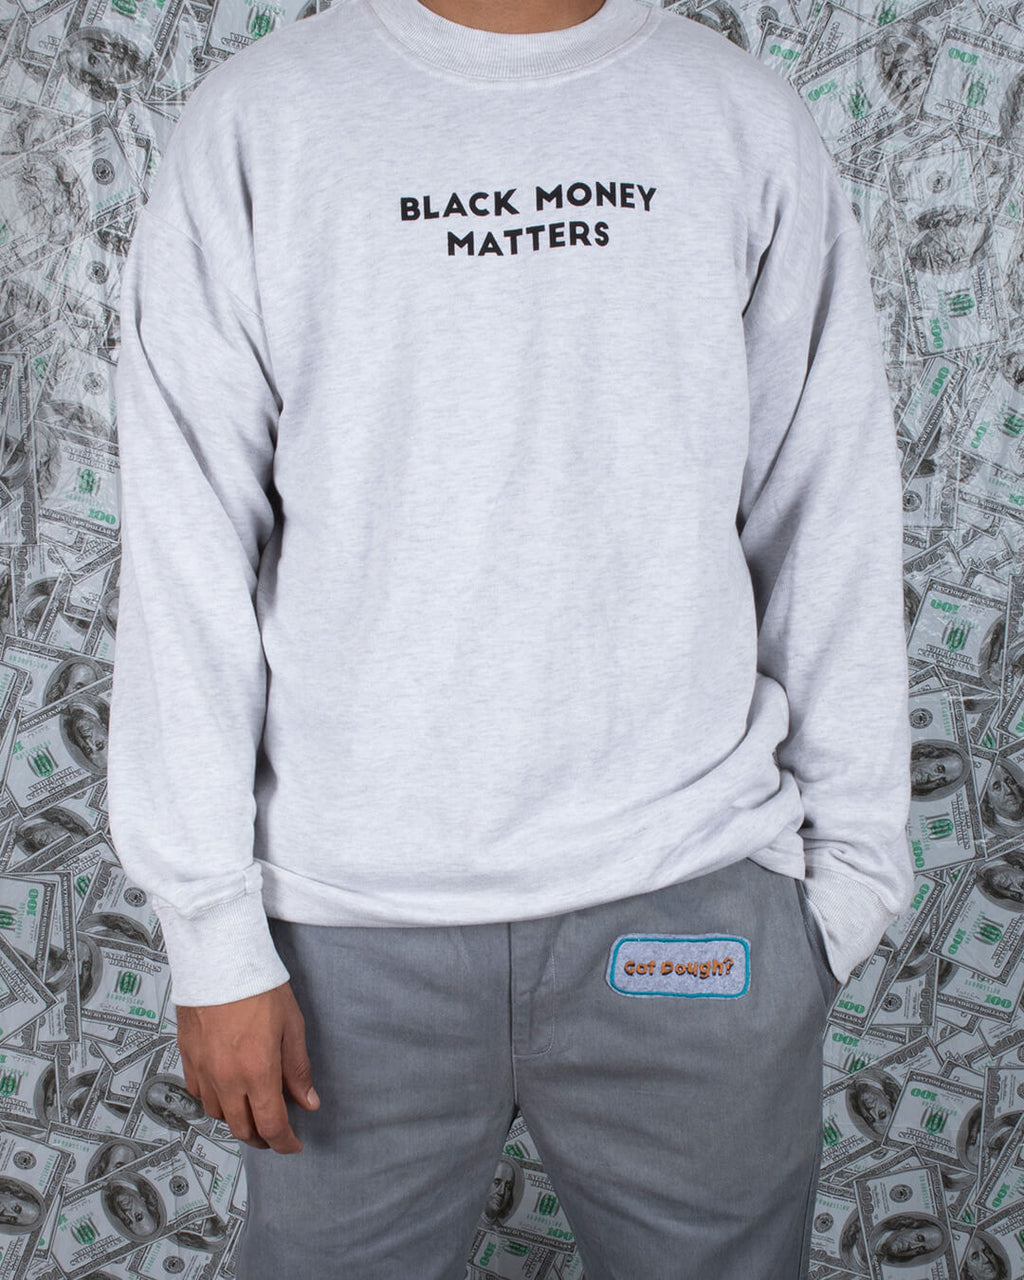 BLACK MONEY MATTERS SWEATSHIRT